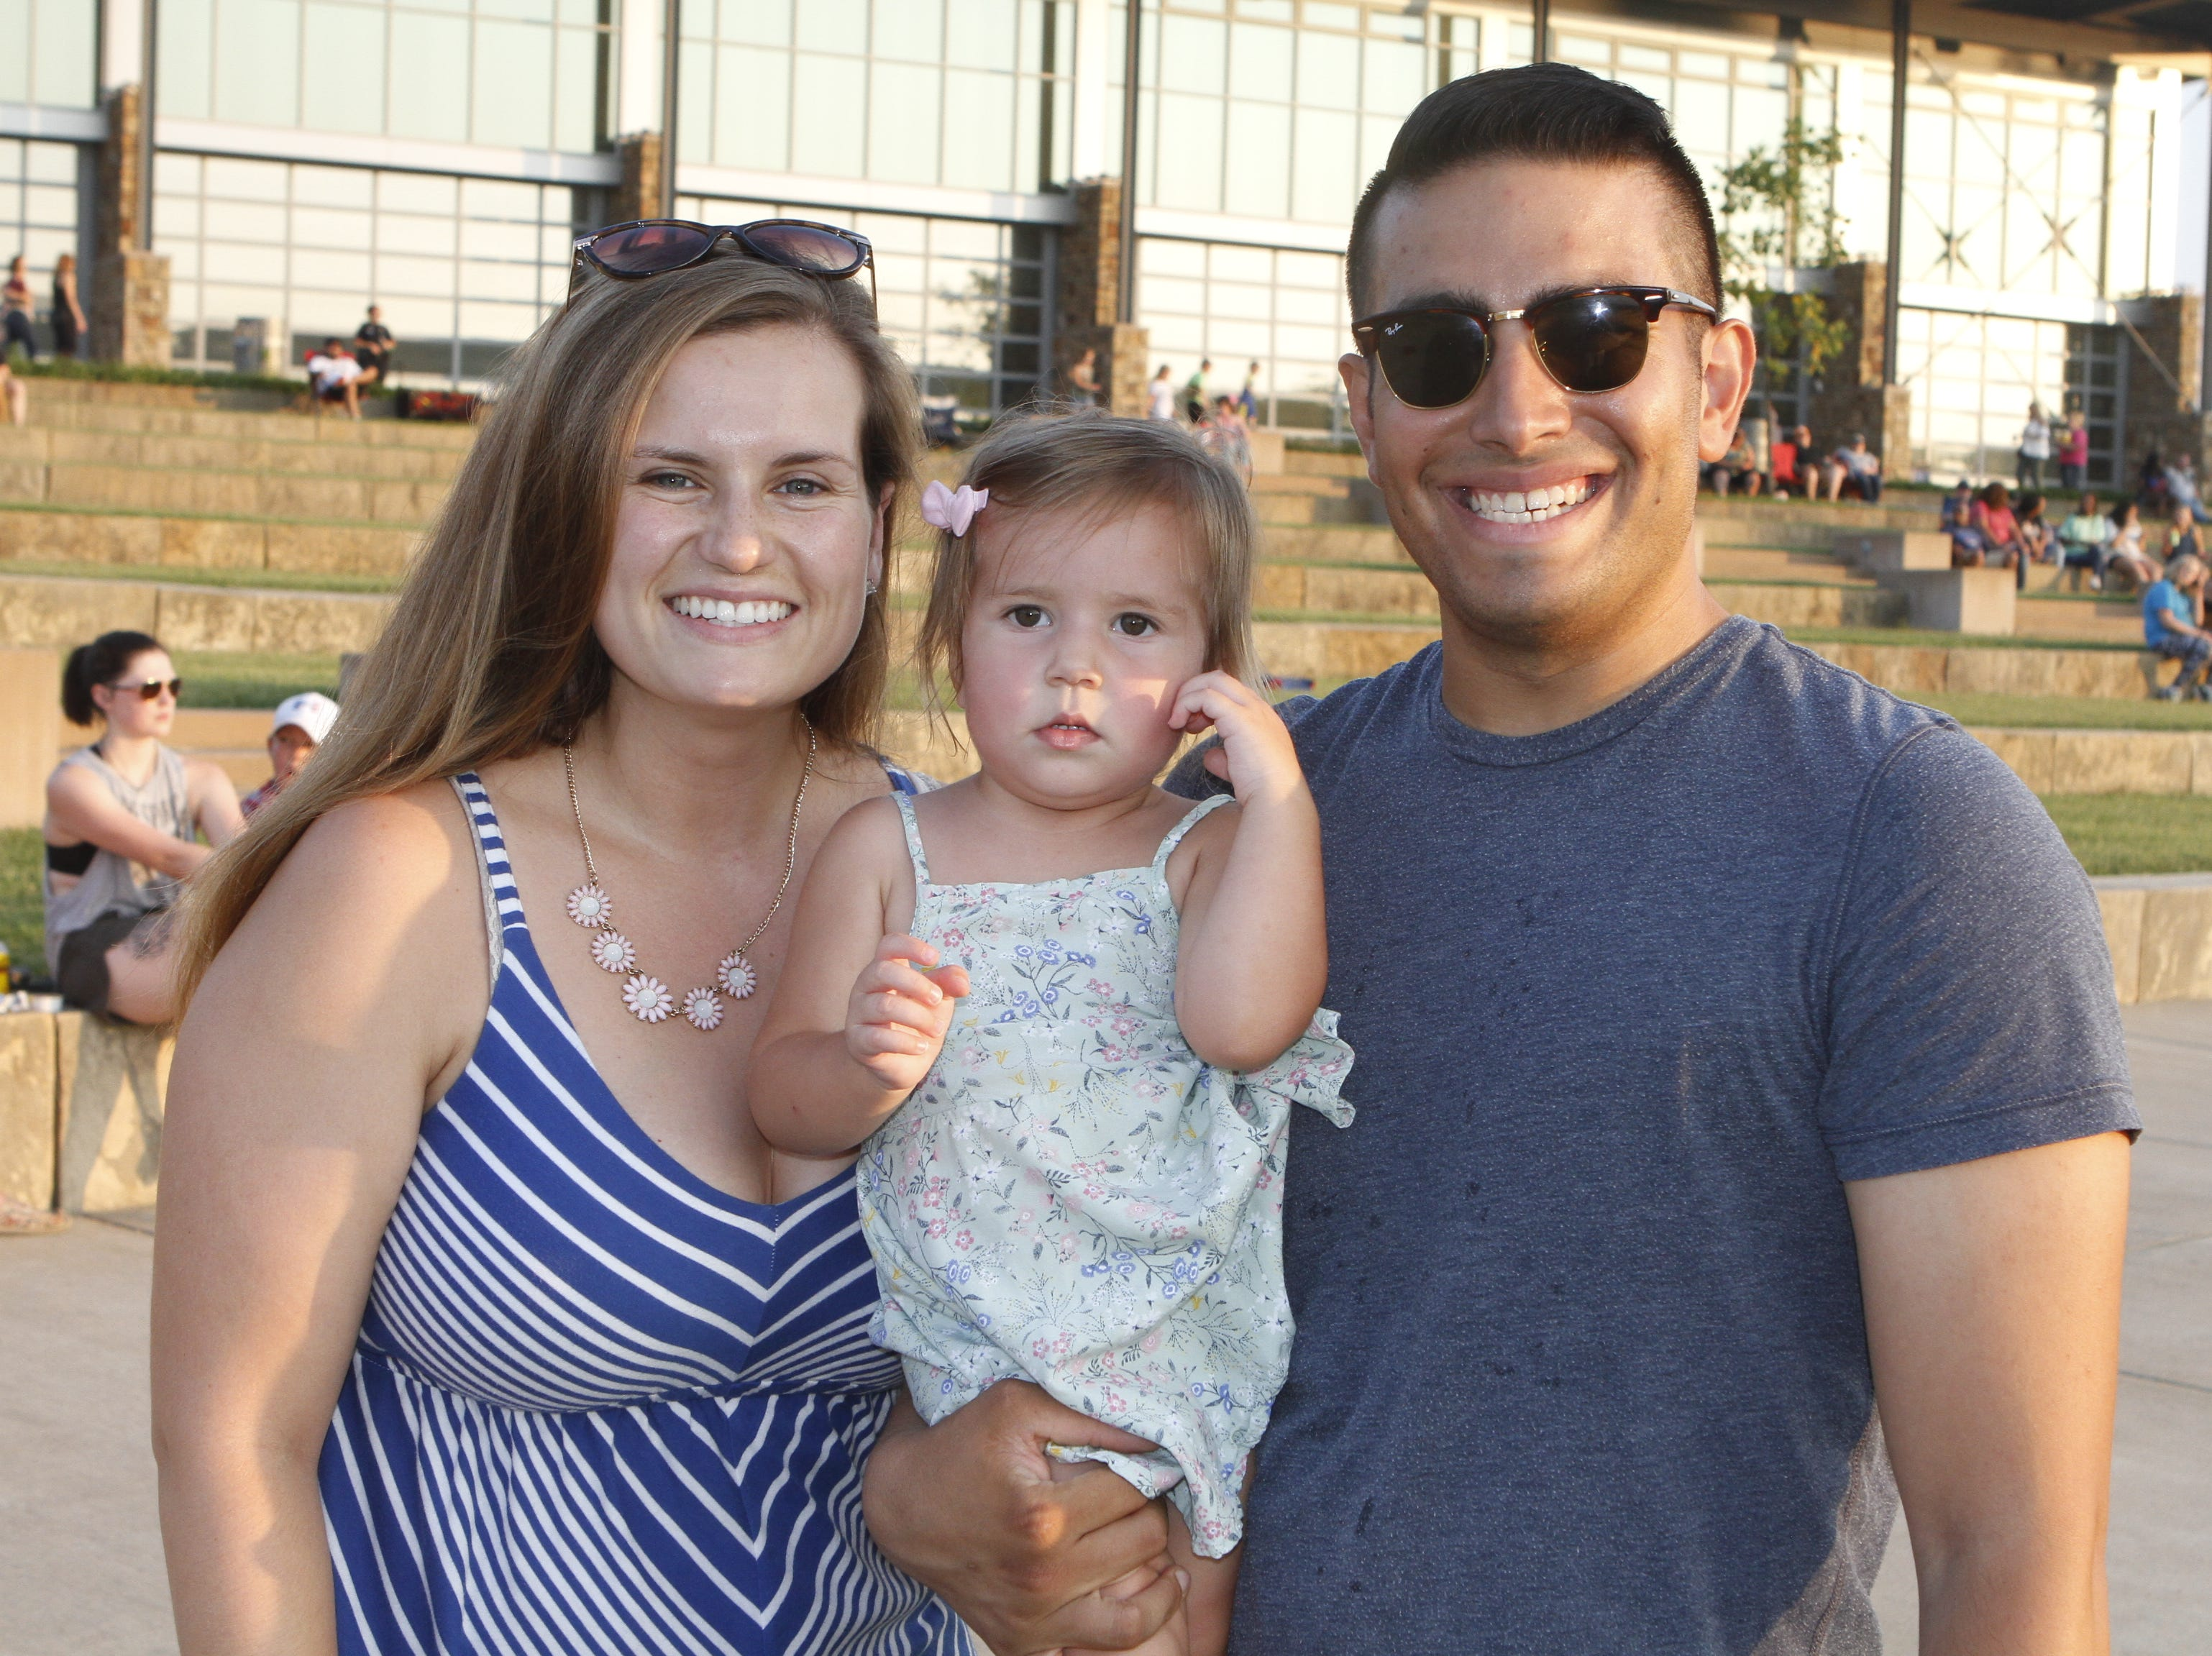 Jessica Sofia And Xavier Martinez at Saturday's Road to Riverfest, a Liberty Park summer concert series event.